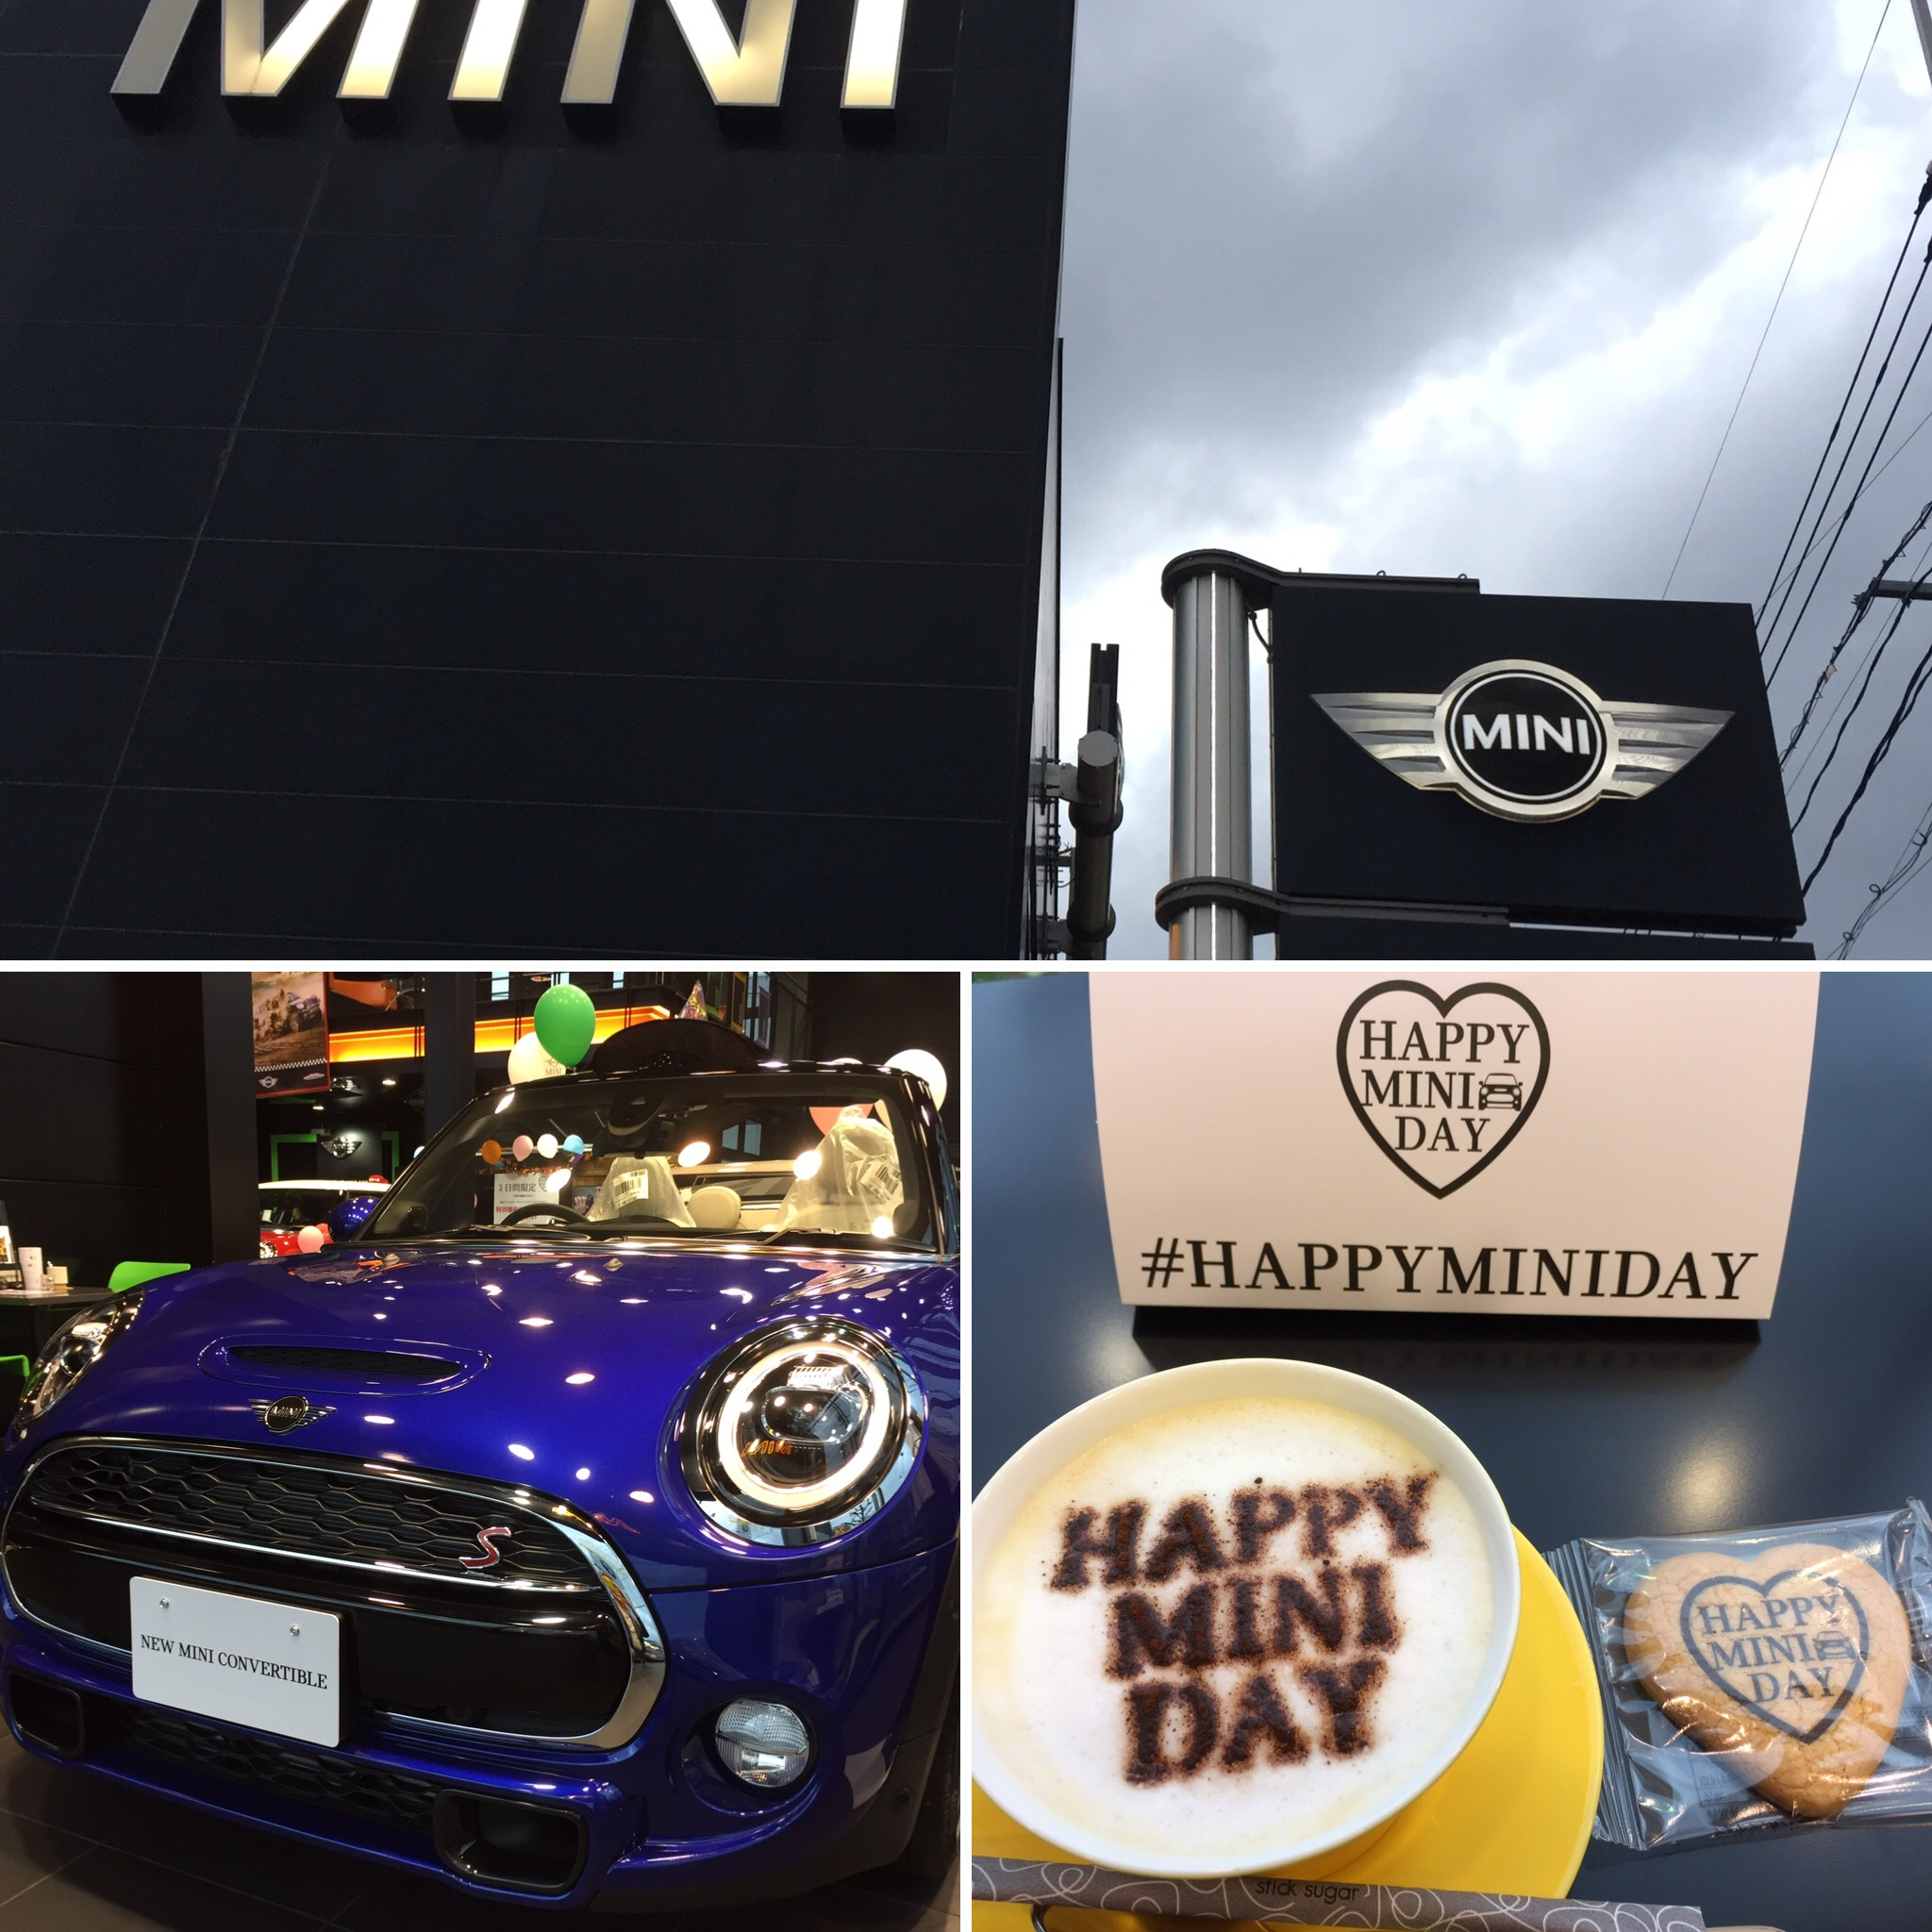 HAPPY MINI DAY